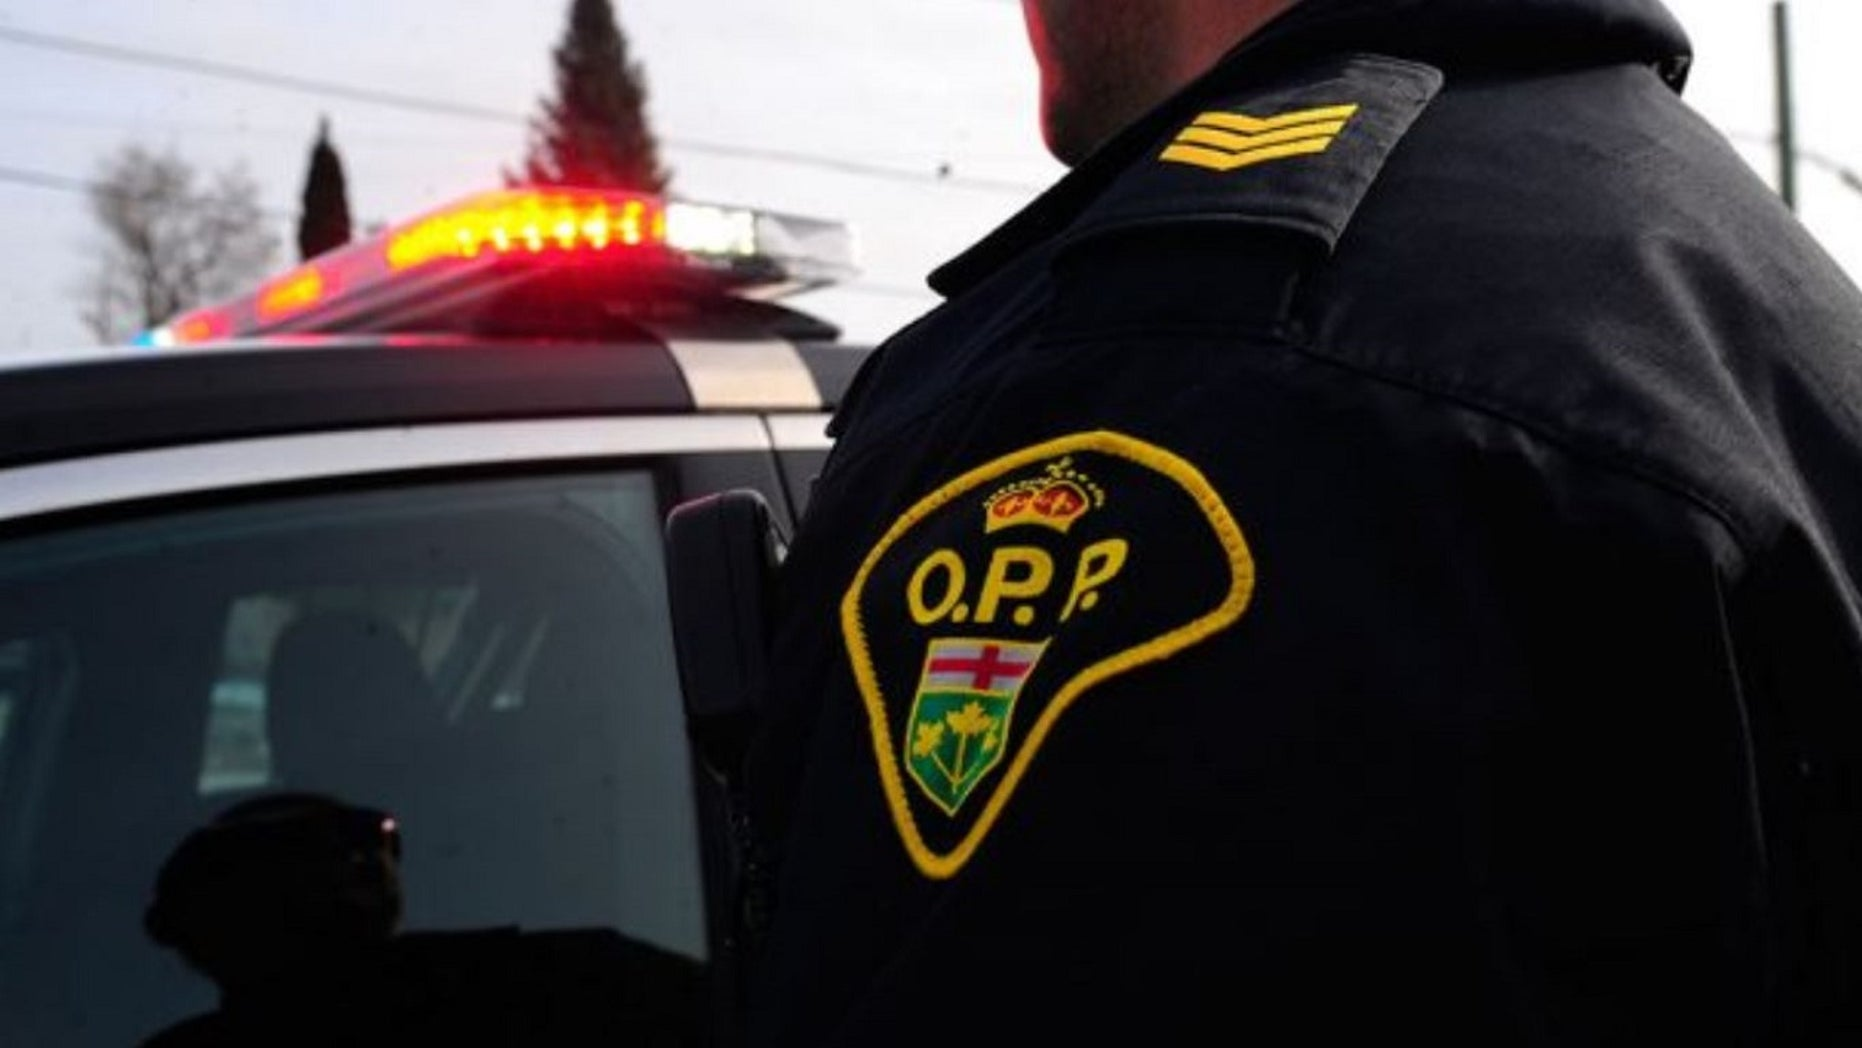 OPP has issued a message to parents urging the importance of legitimate 911 calls.